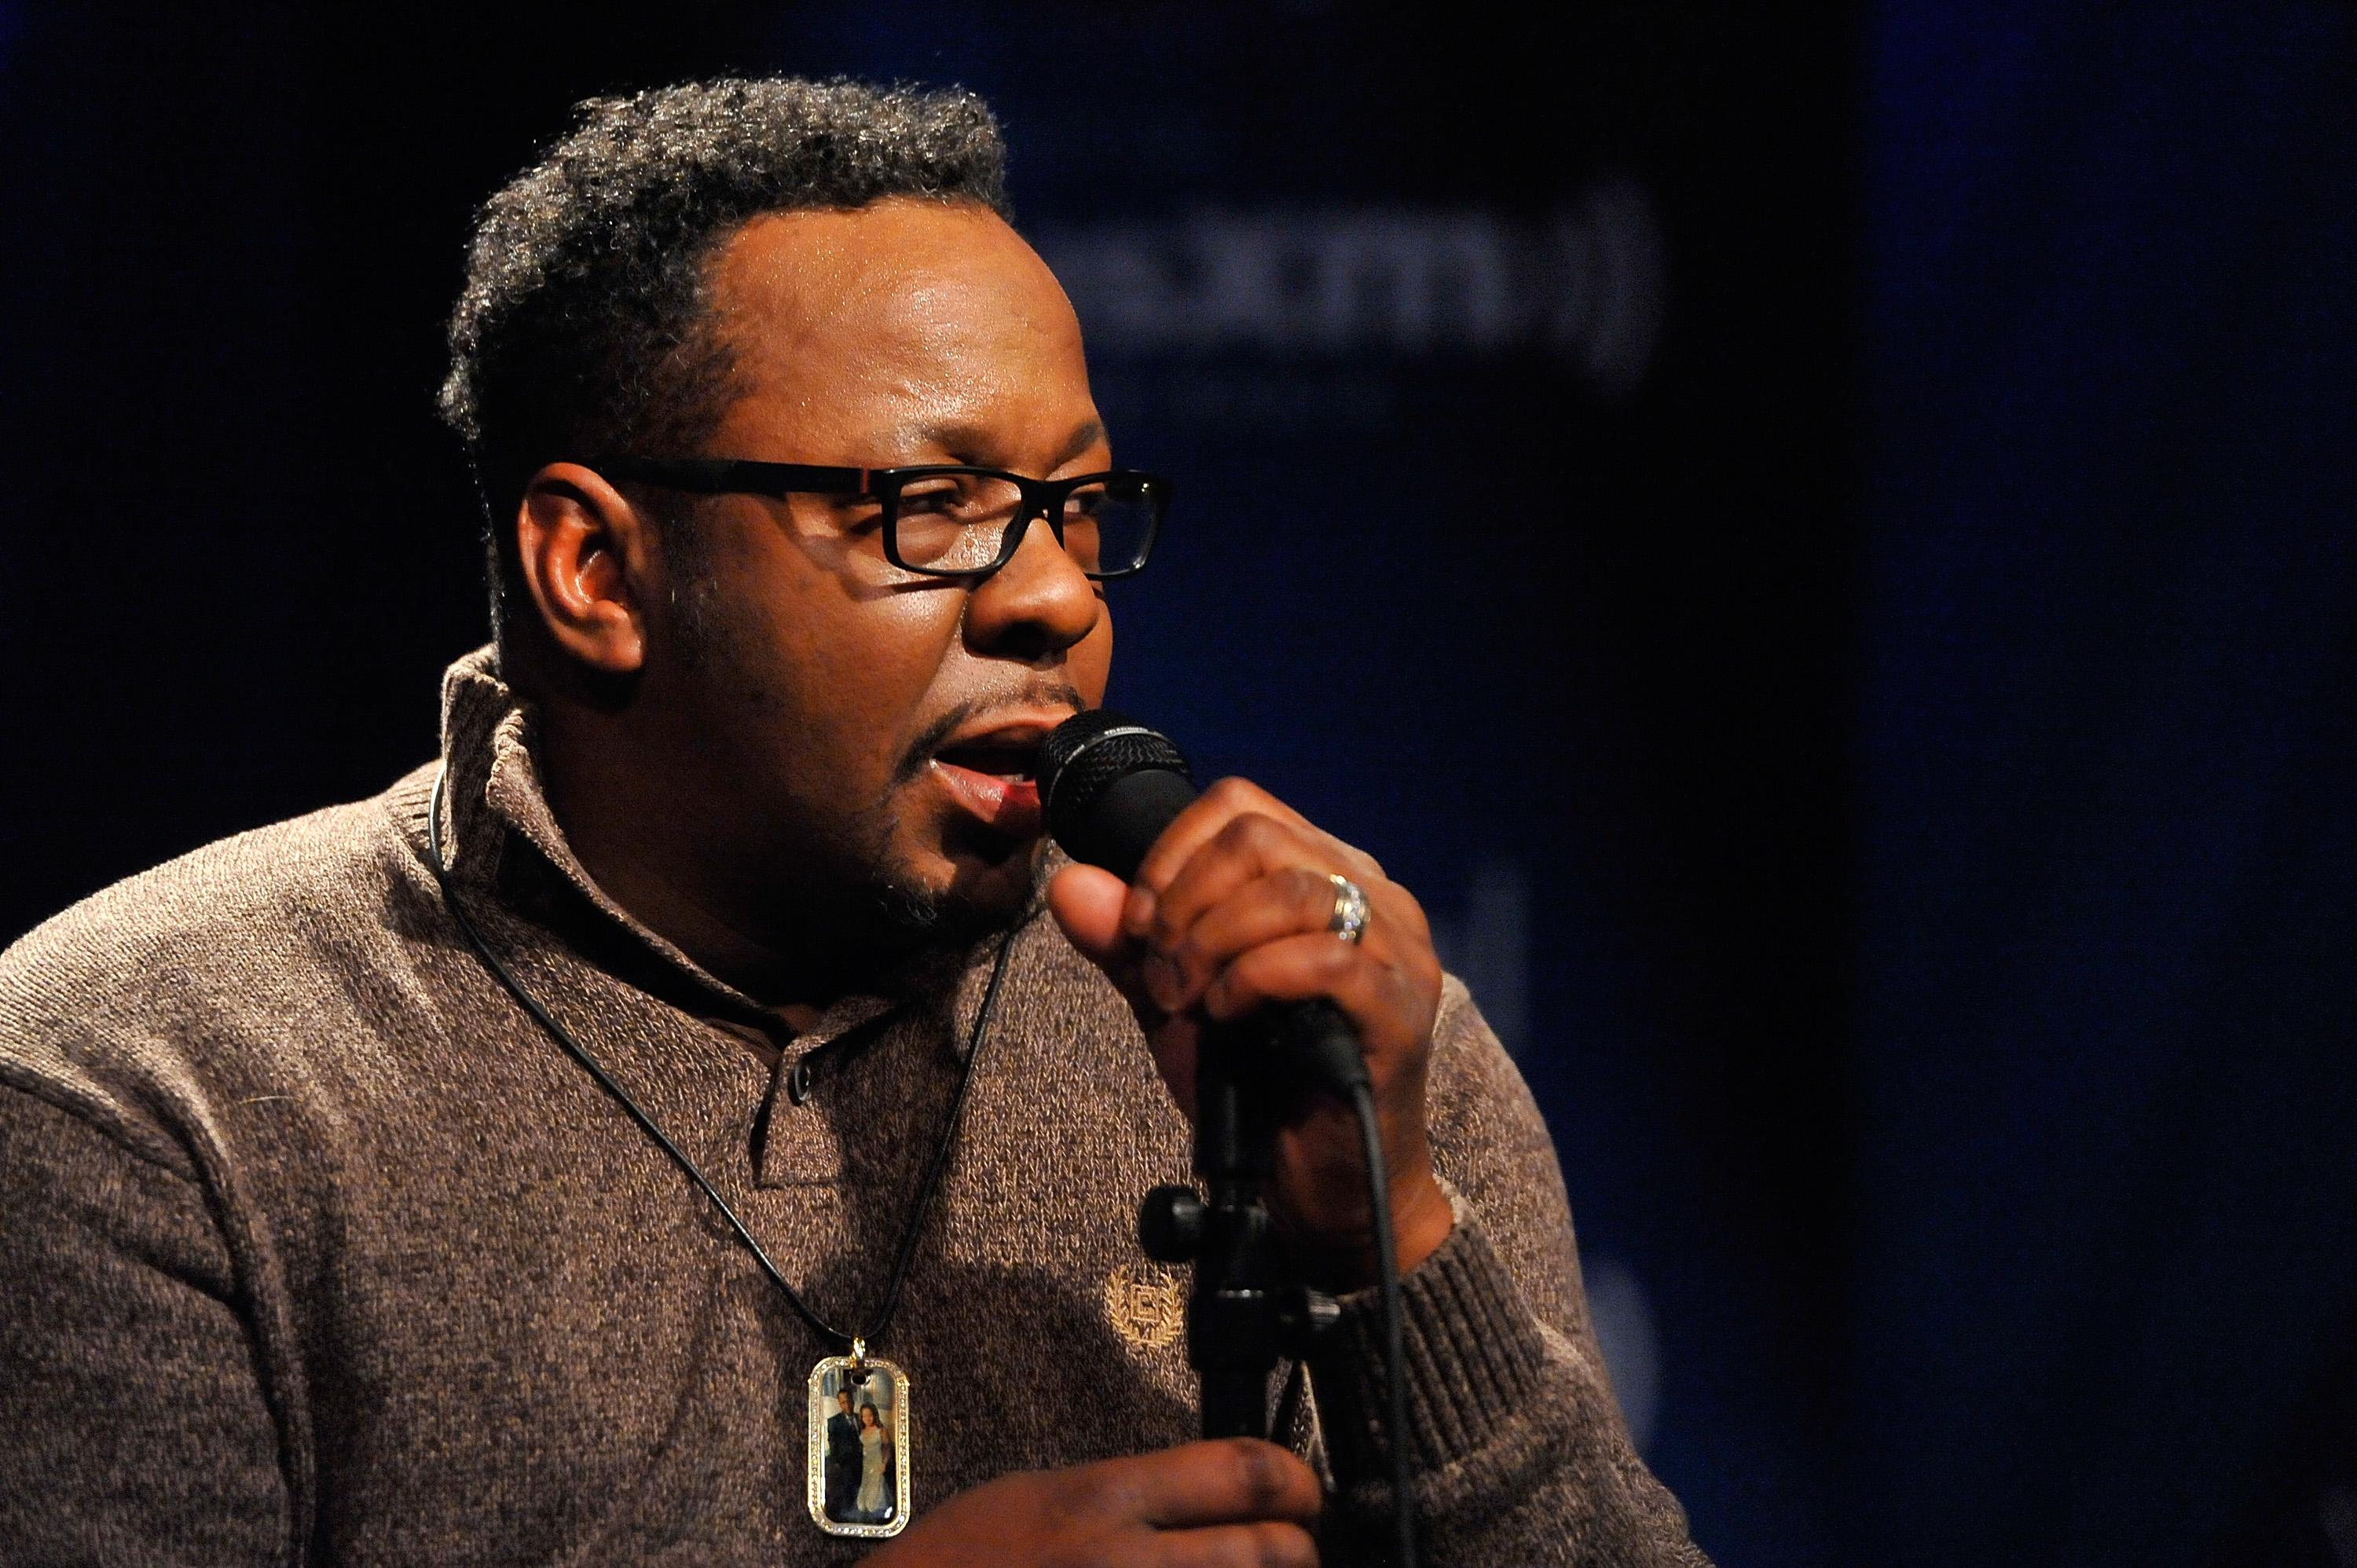 Bobby Brown Gets Candid During 20/20 Interview